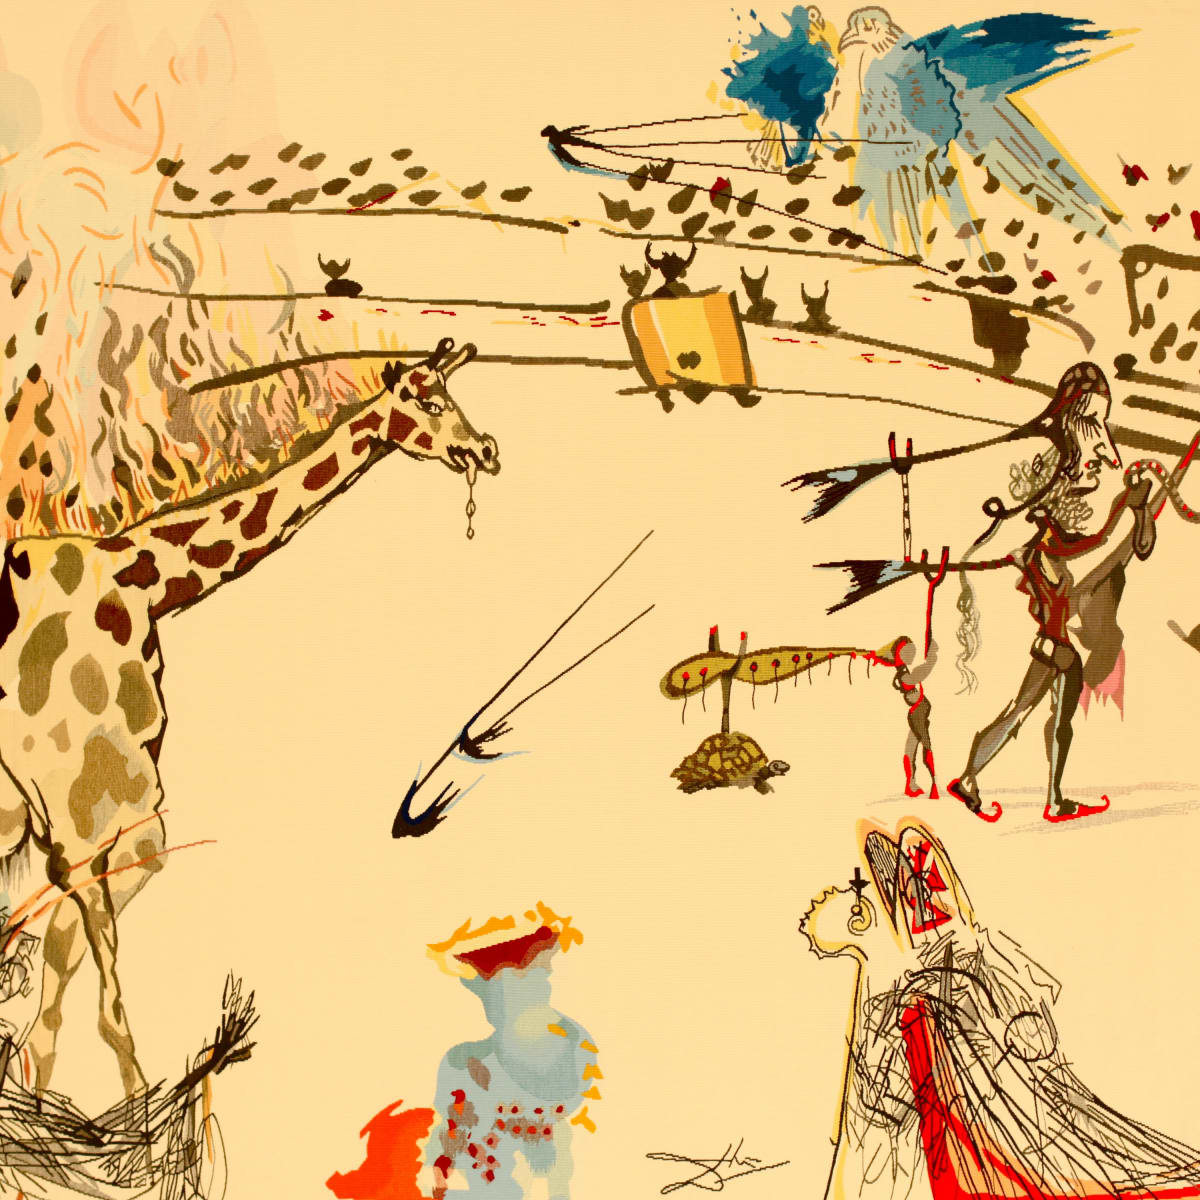 Burning Giraffe tapestry by Salvador Dali